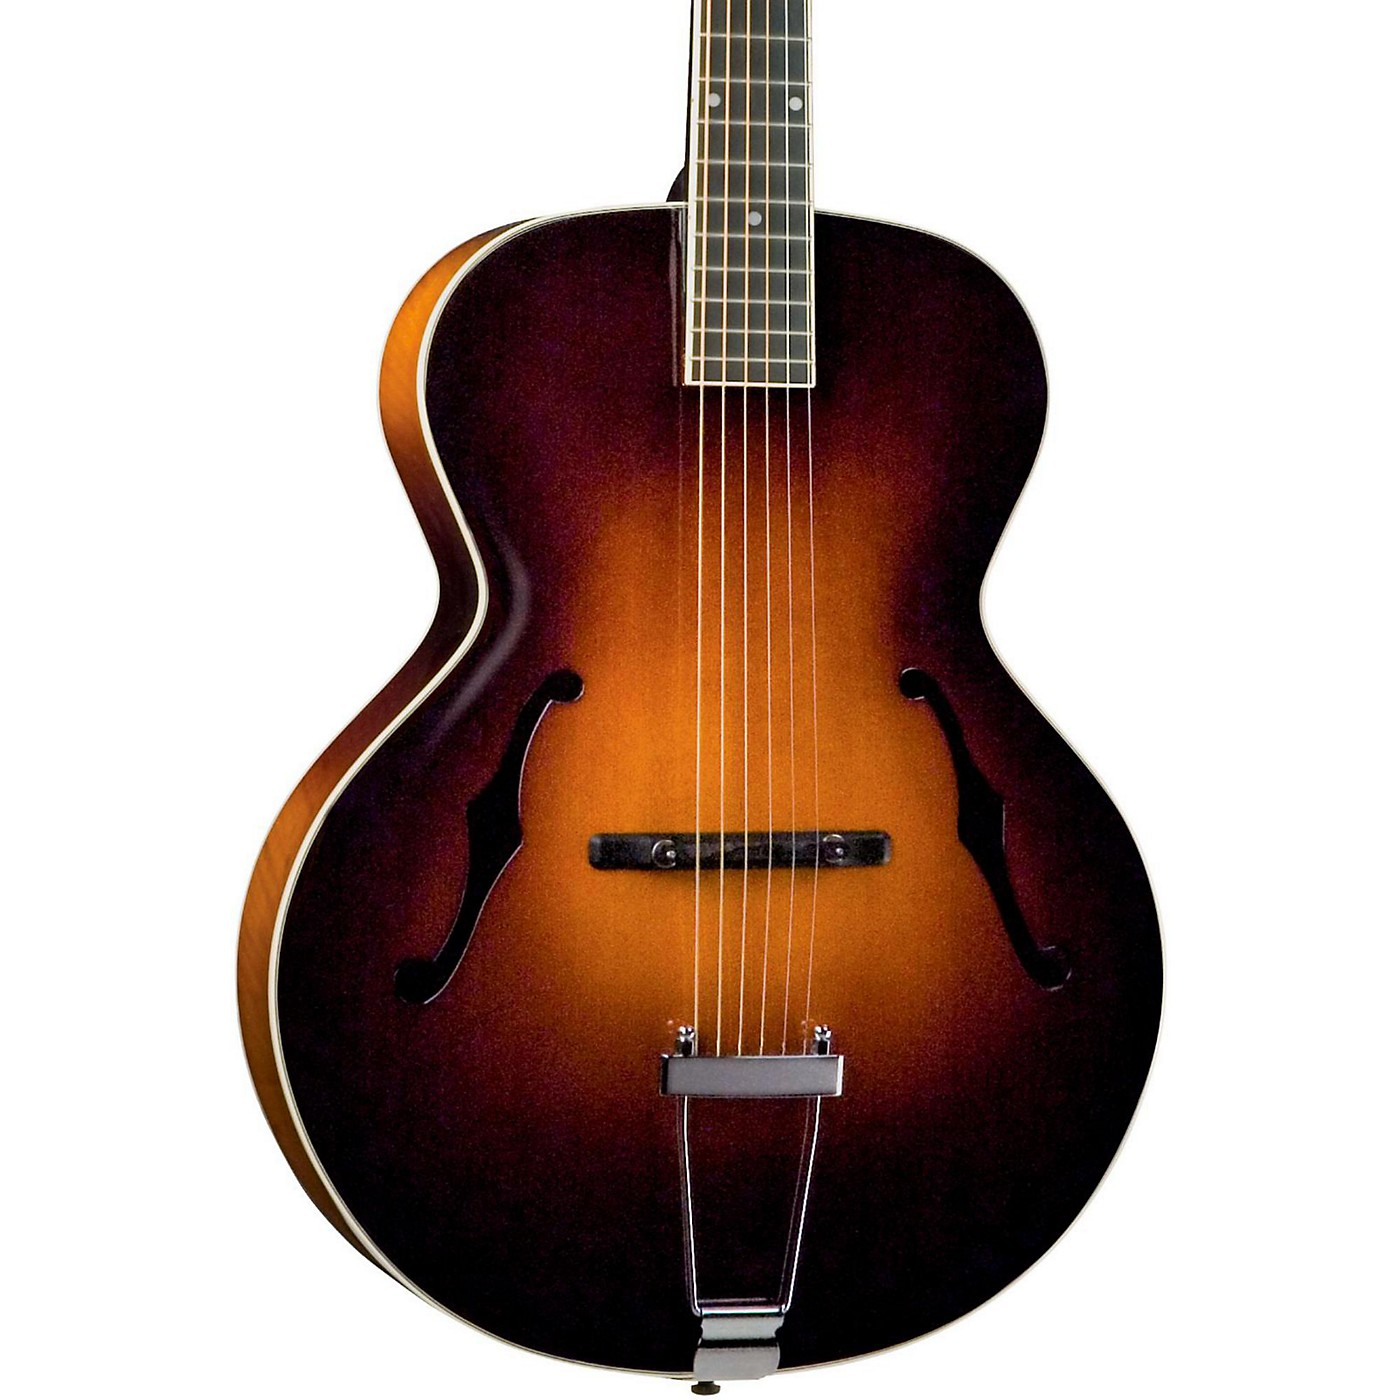 The Loar LH-700 Archtop Acoustic Guitar thumbnail